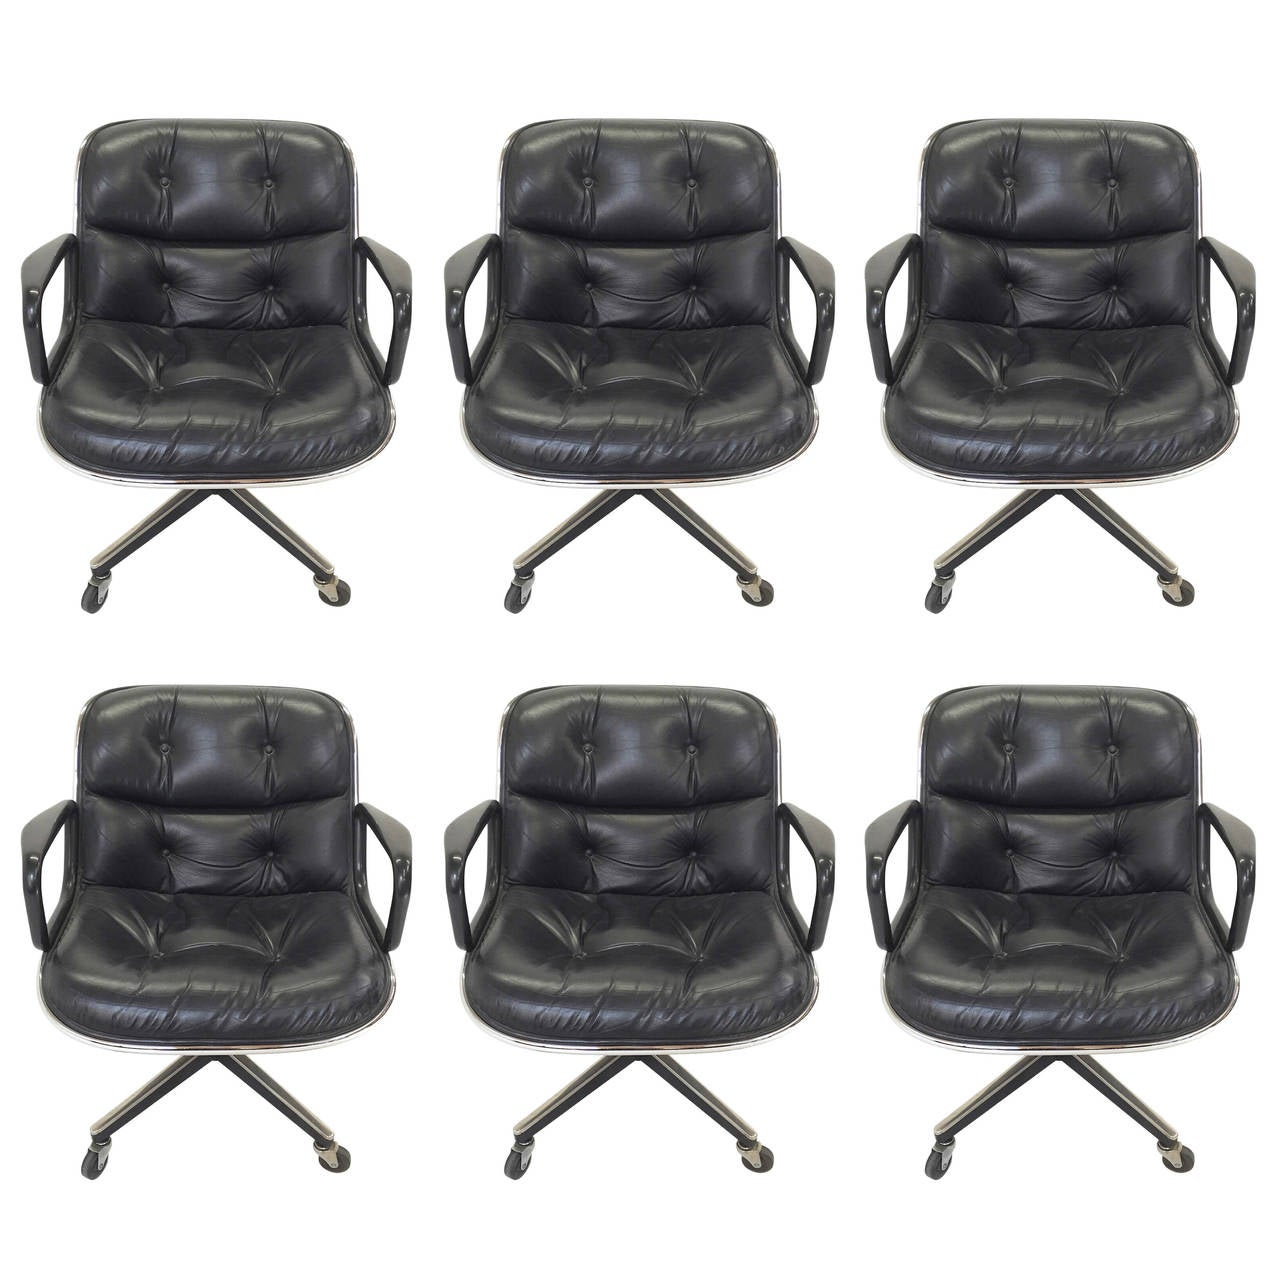 Six black leather charles pollock executive chairs by knoll at 1stdibs